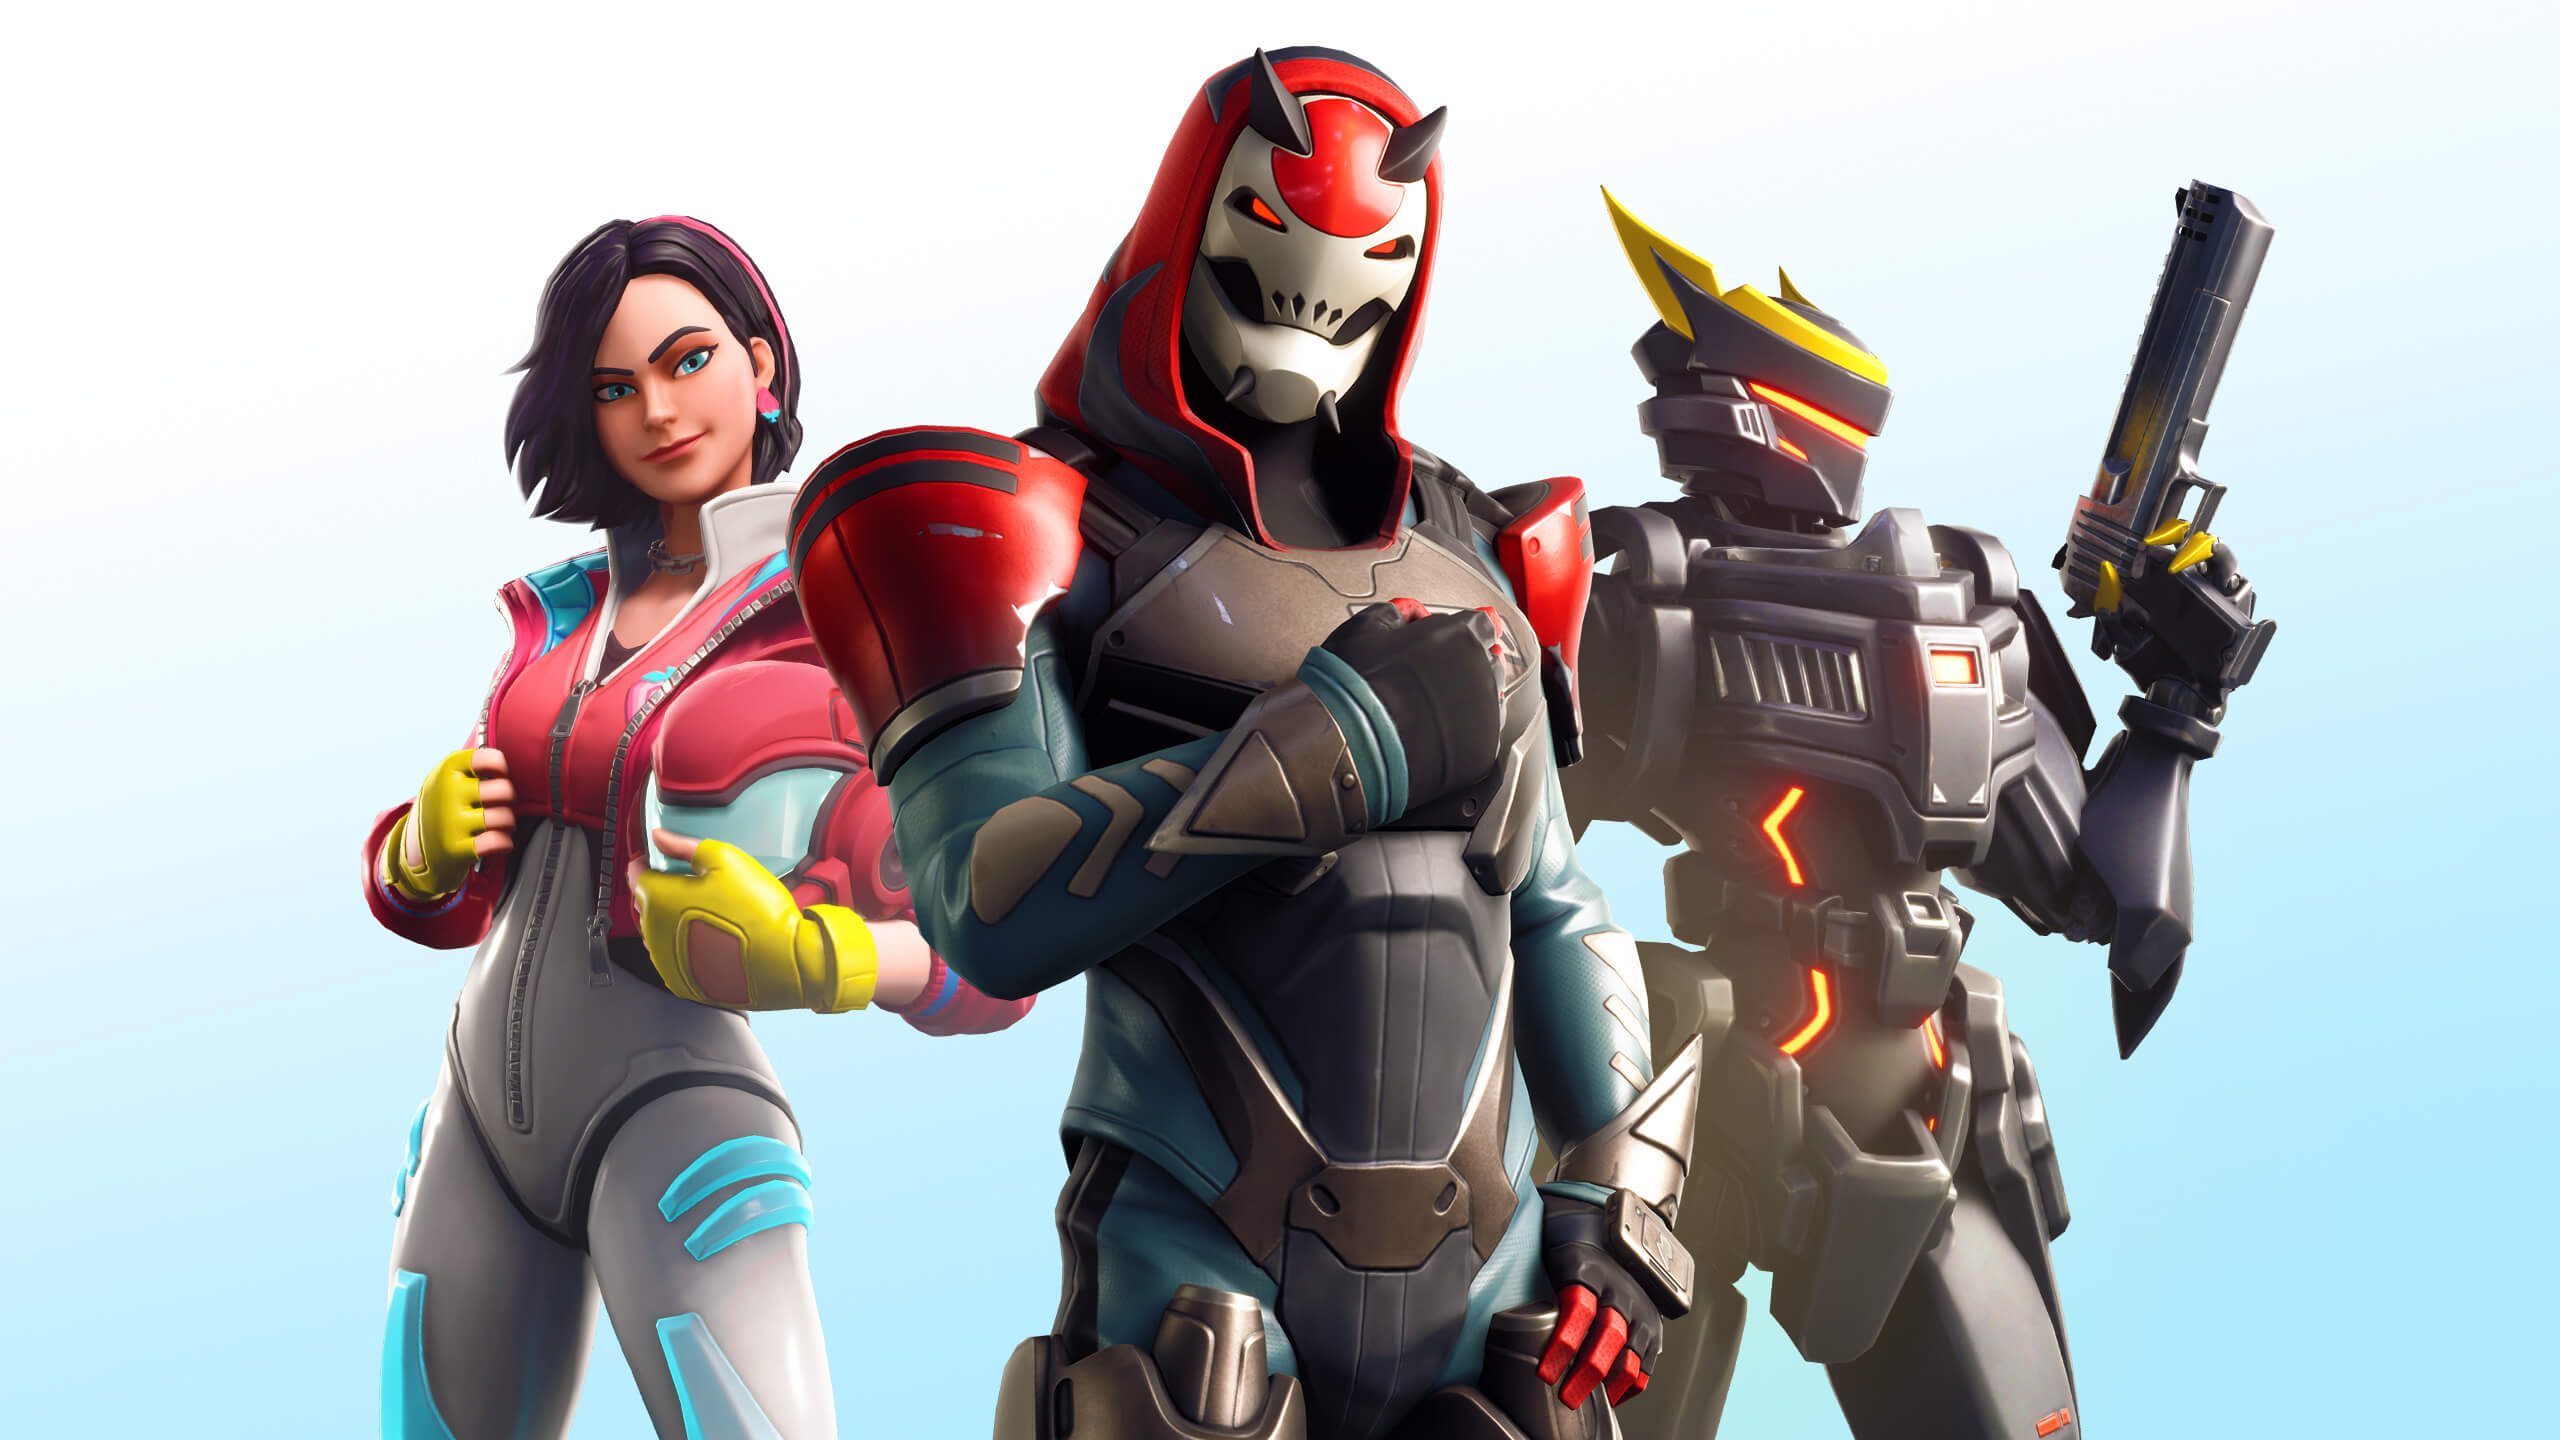 Fortnite Gallery 3